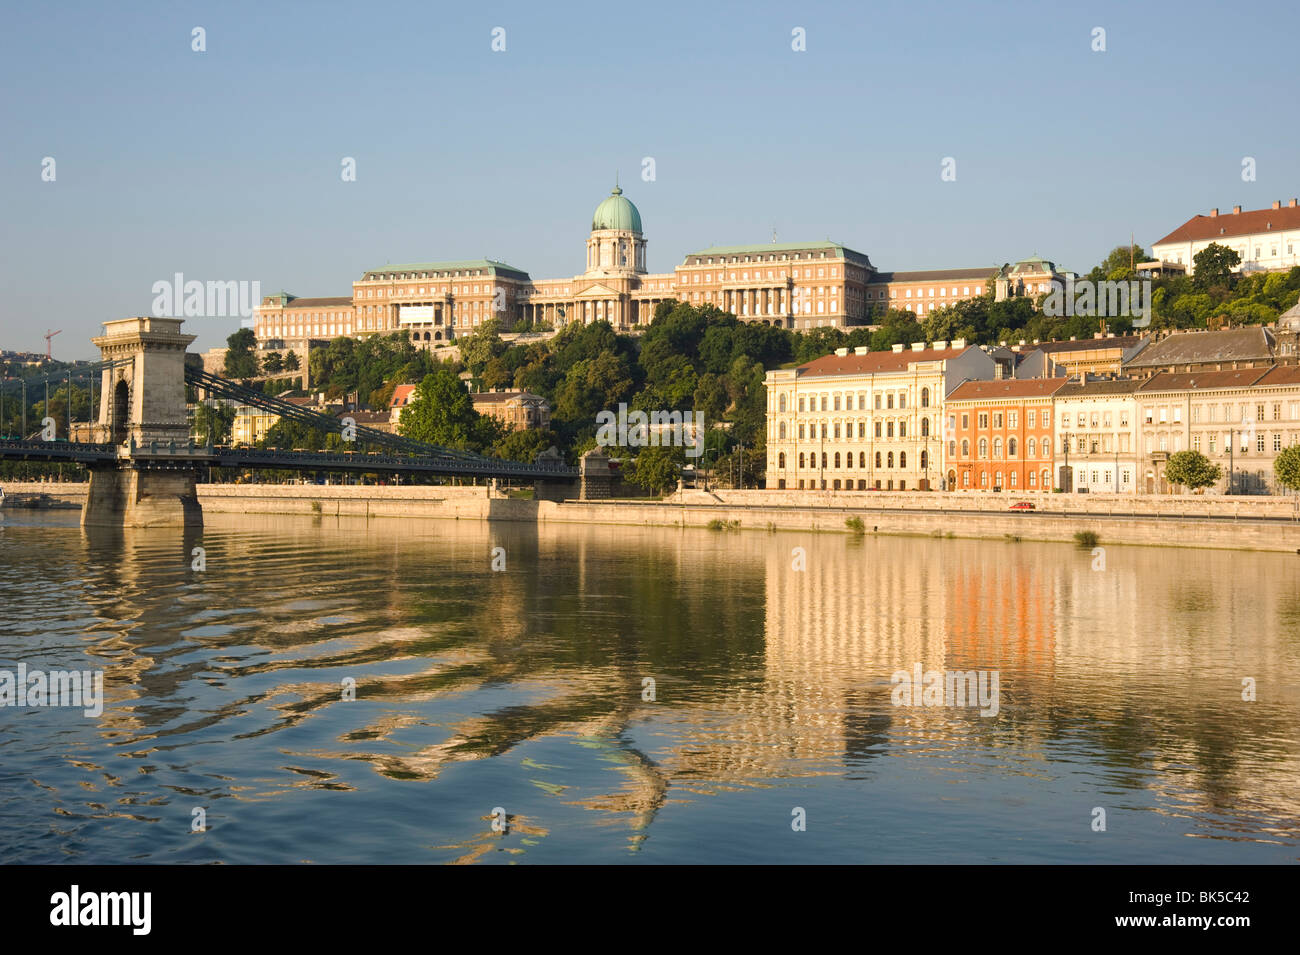 An early morning view of Budapest including the Chain Bridge, Castle Hill and the Danube River, Budapest, Hungary, - Stock Image